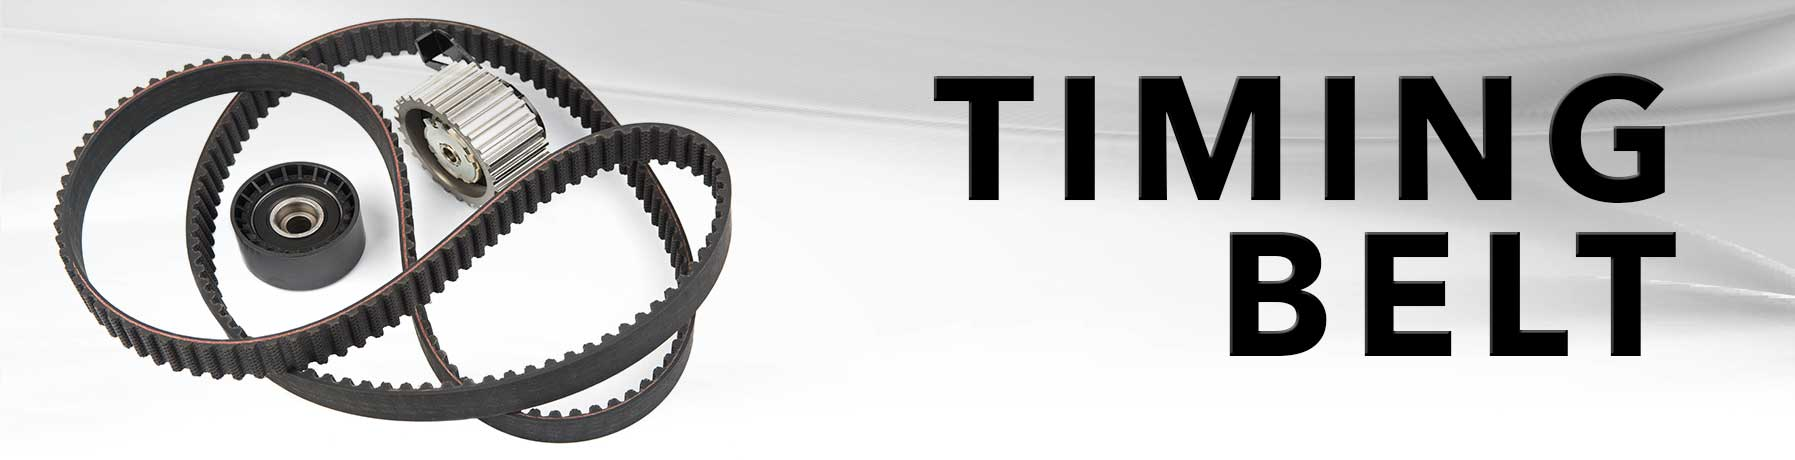 Timing belt repair banner image with picture of a belt and cogs